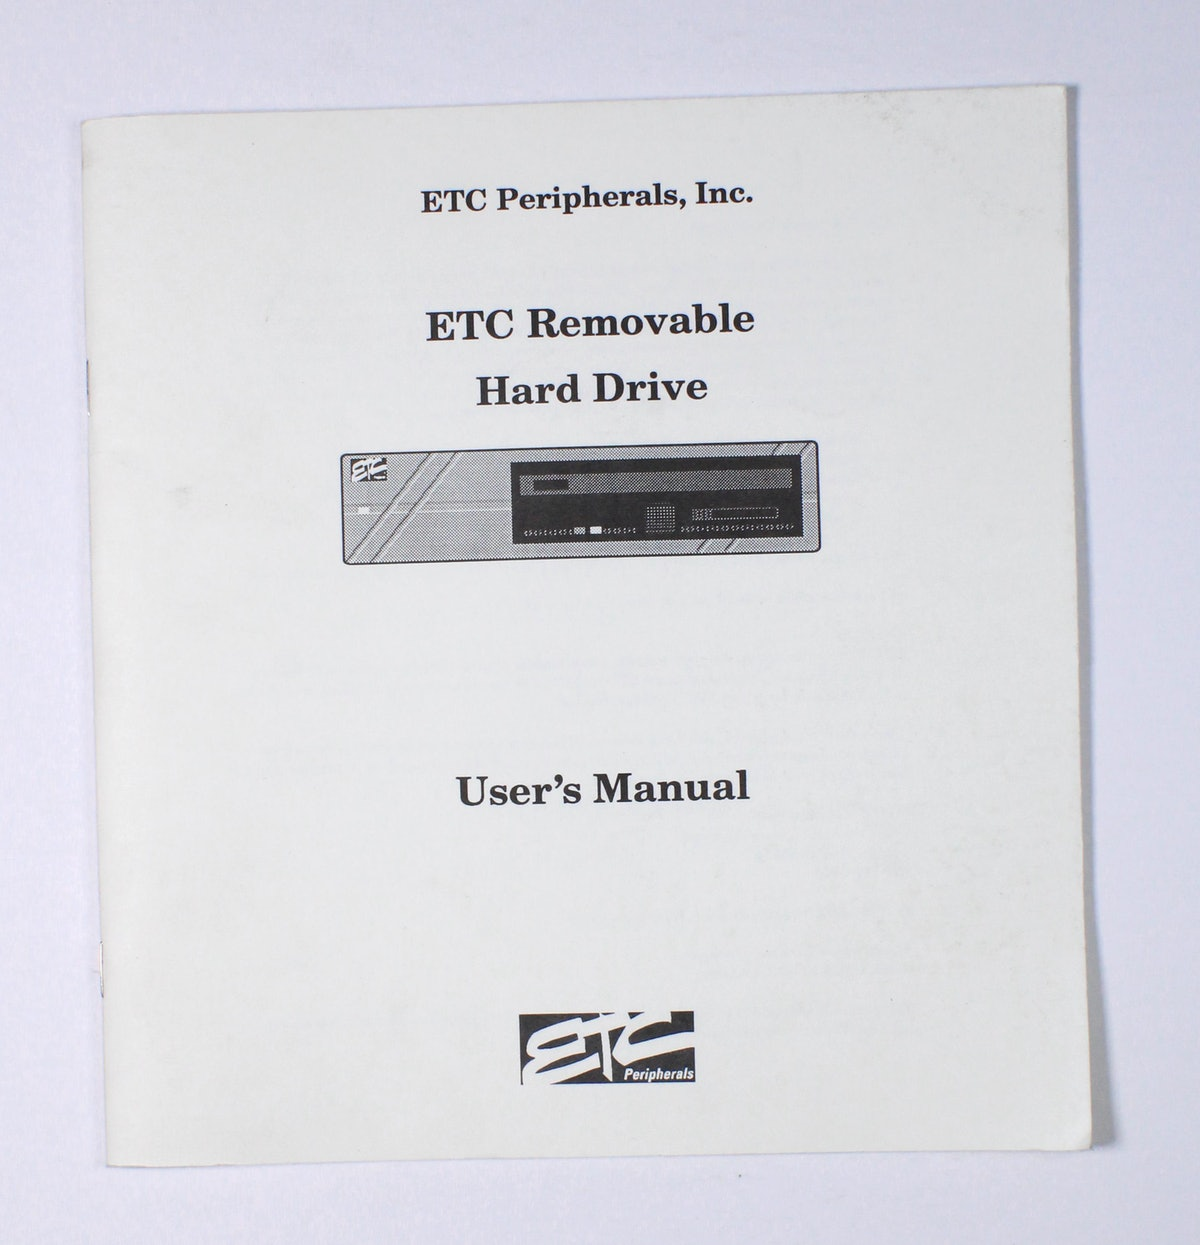 ETC Removable Hard Drive User's Manual